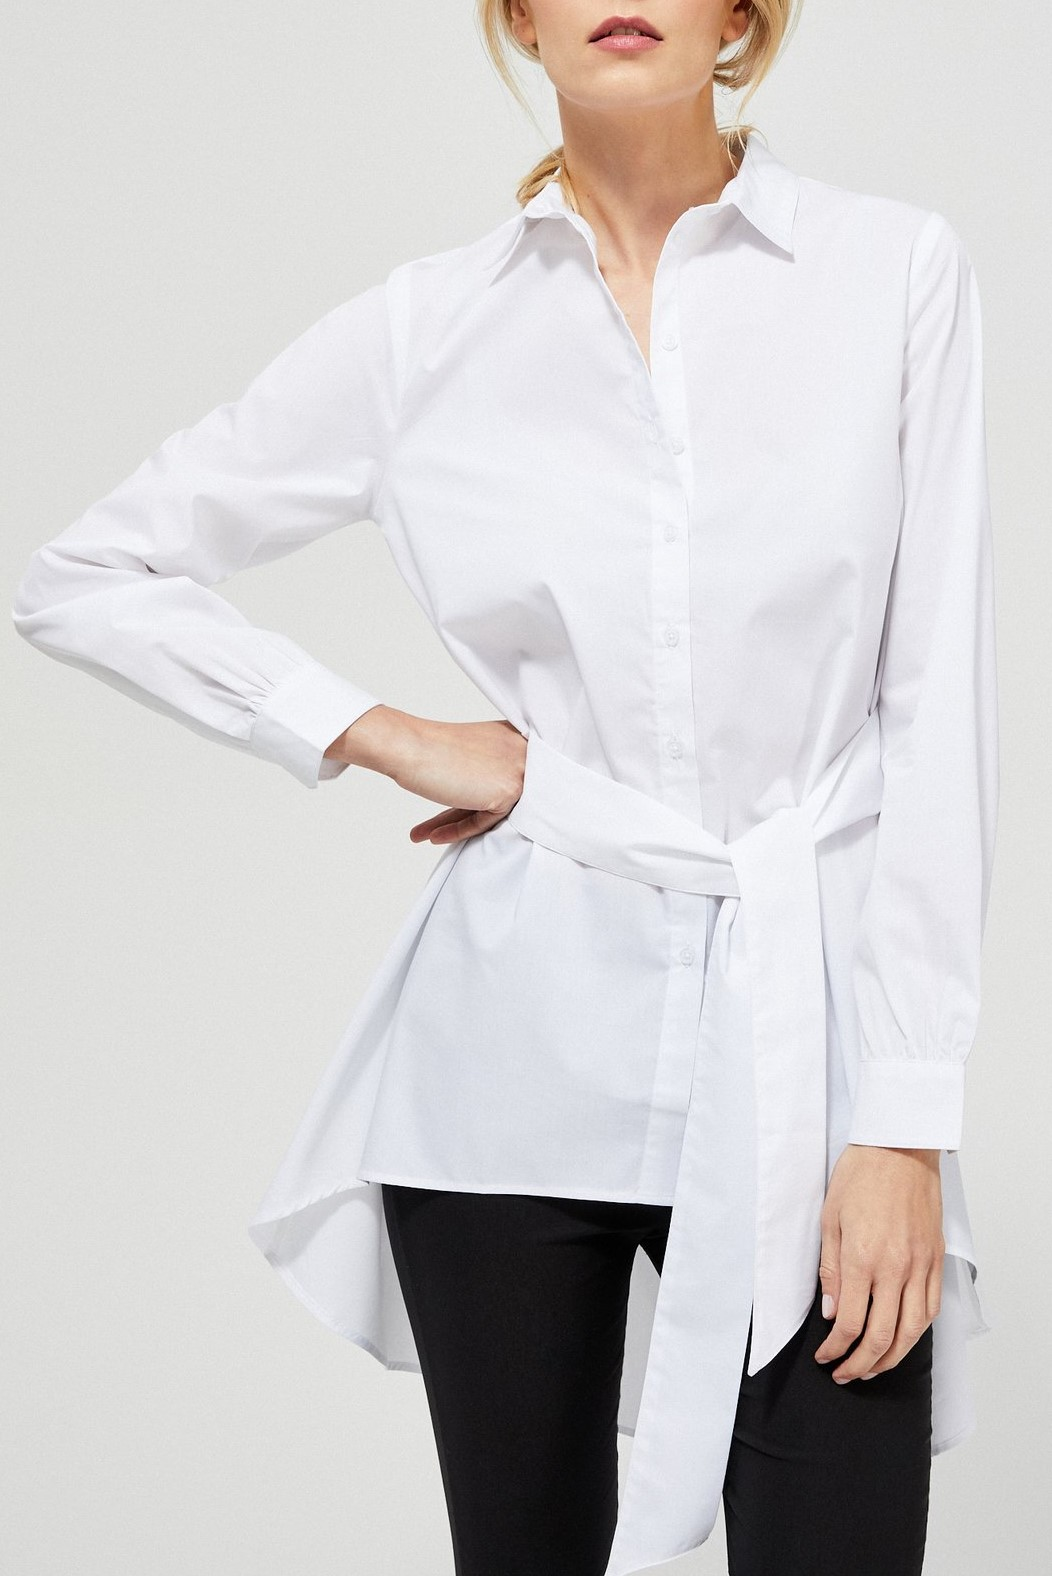 Moodo white button-up shirt